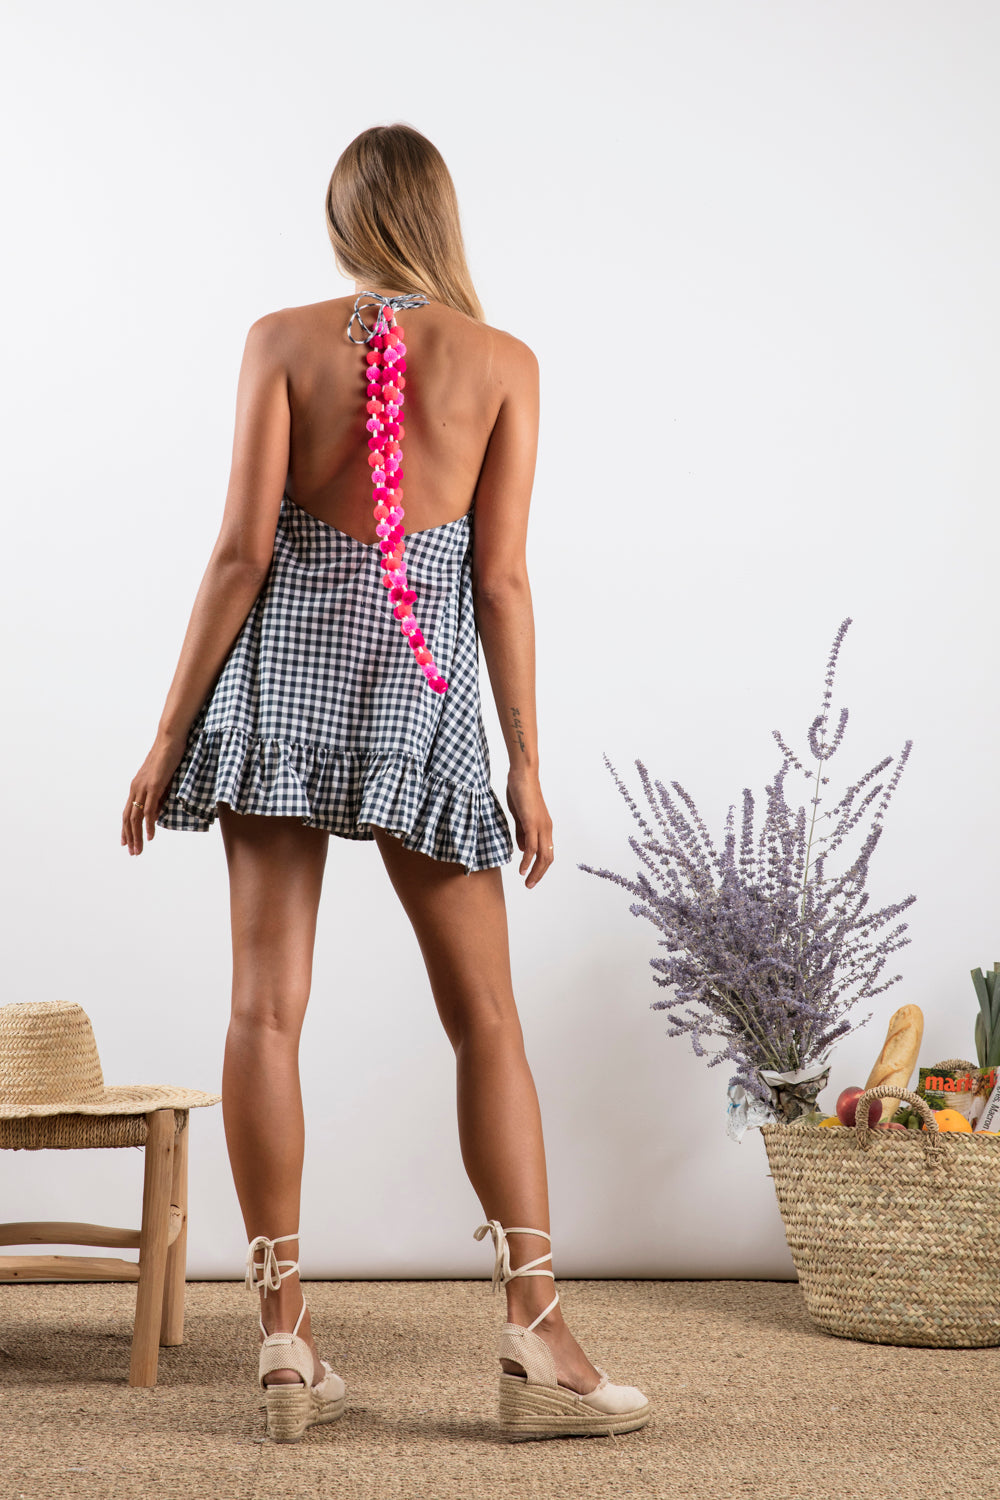 Sundress Lima Gingham Black and Pink Pom-Pon Mini Summer Dress